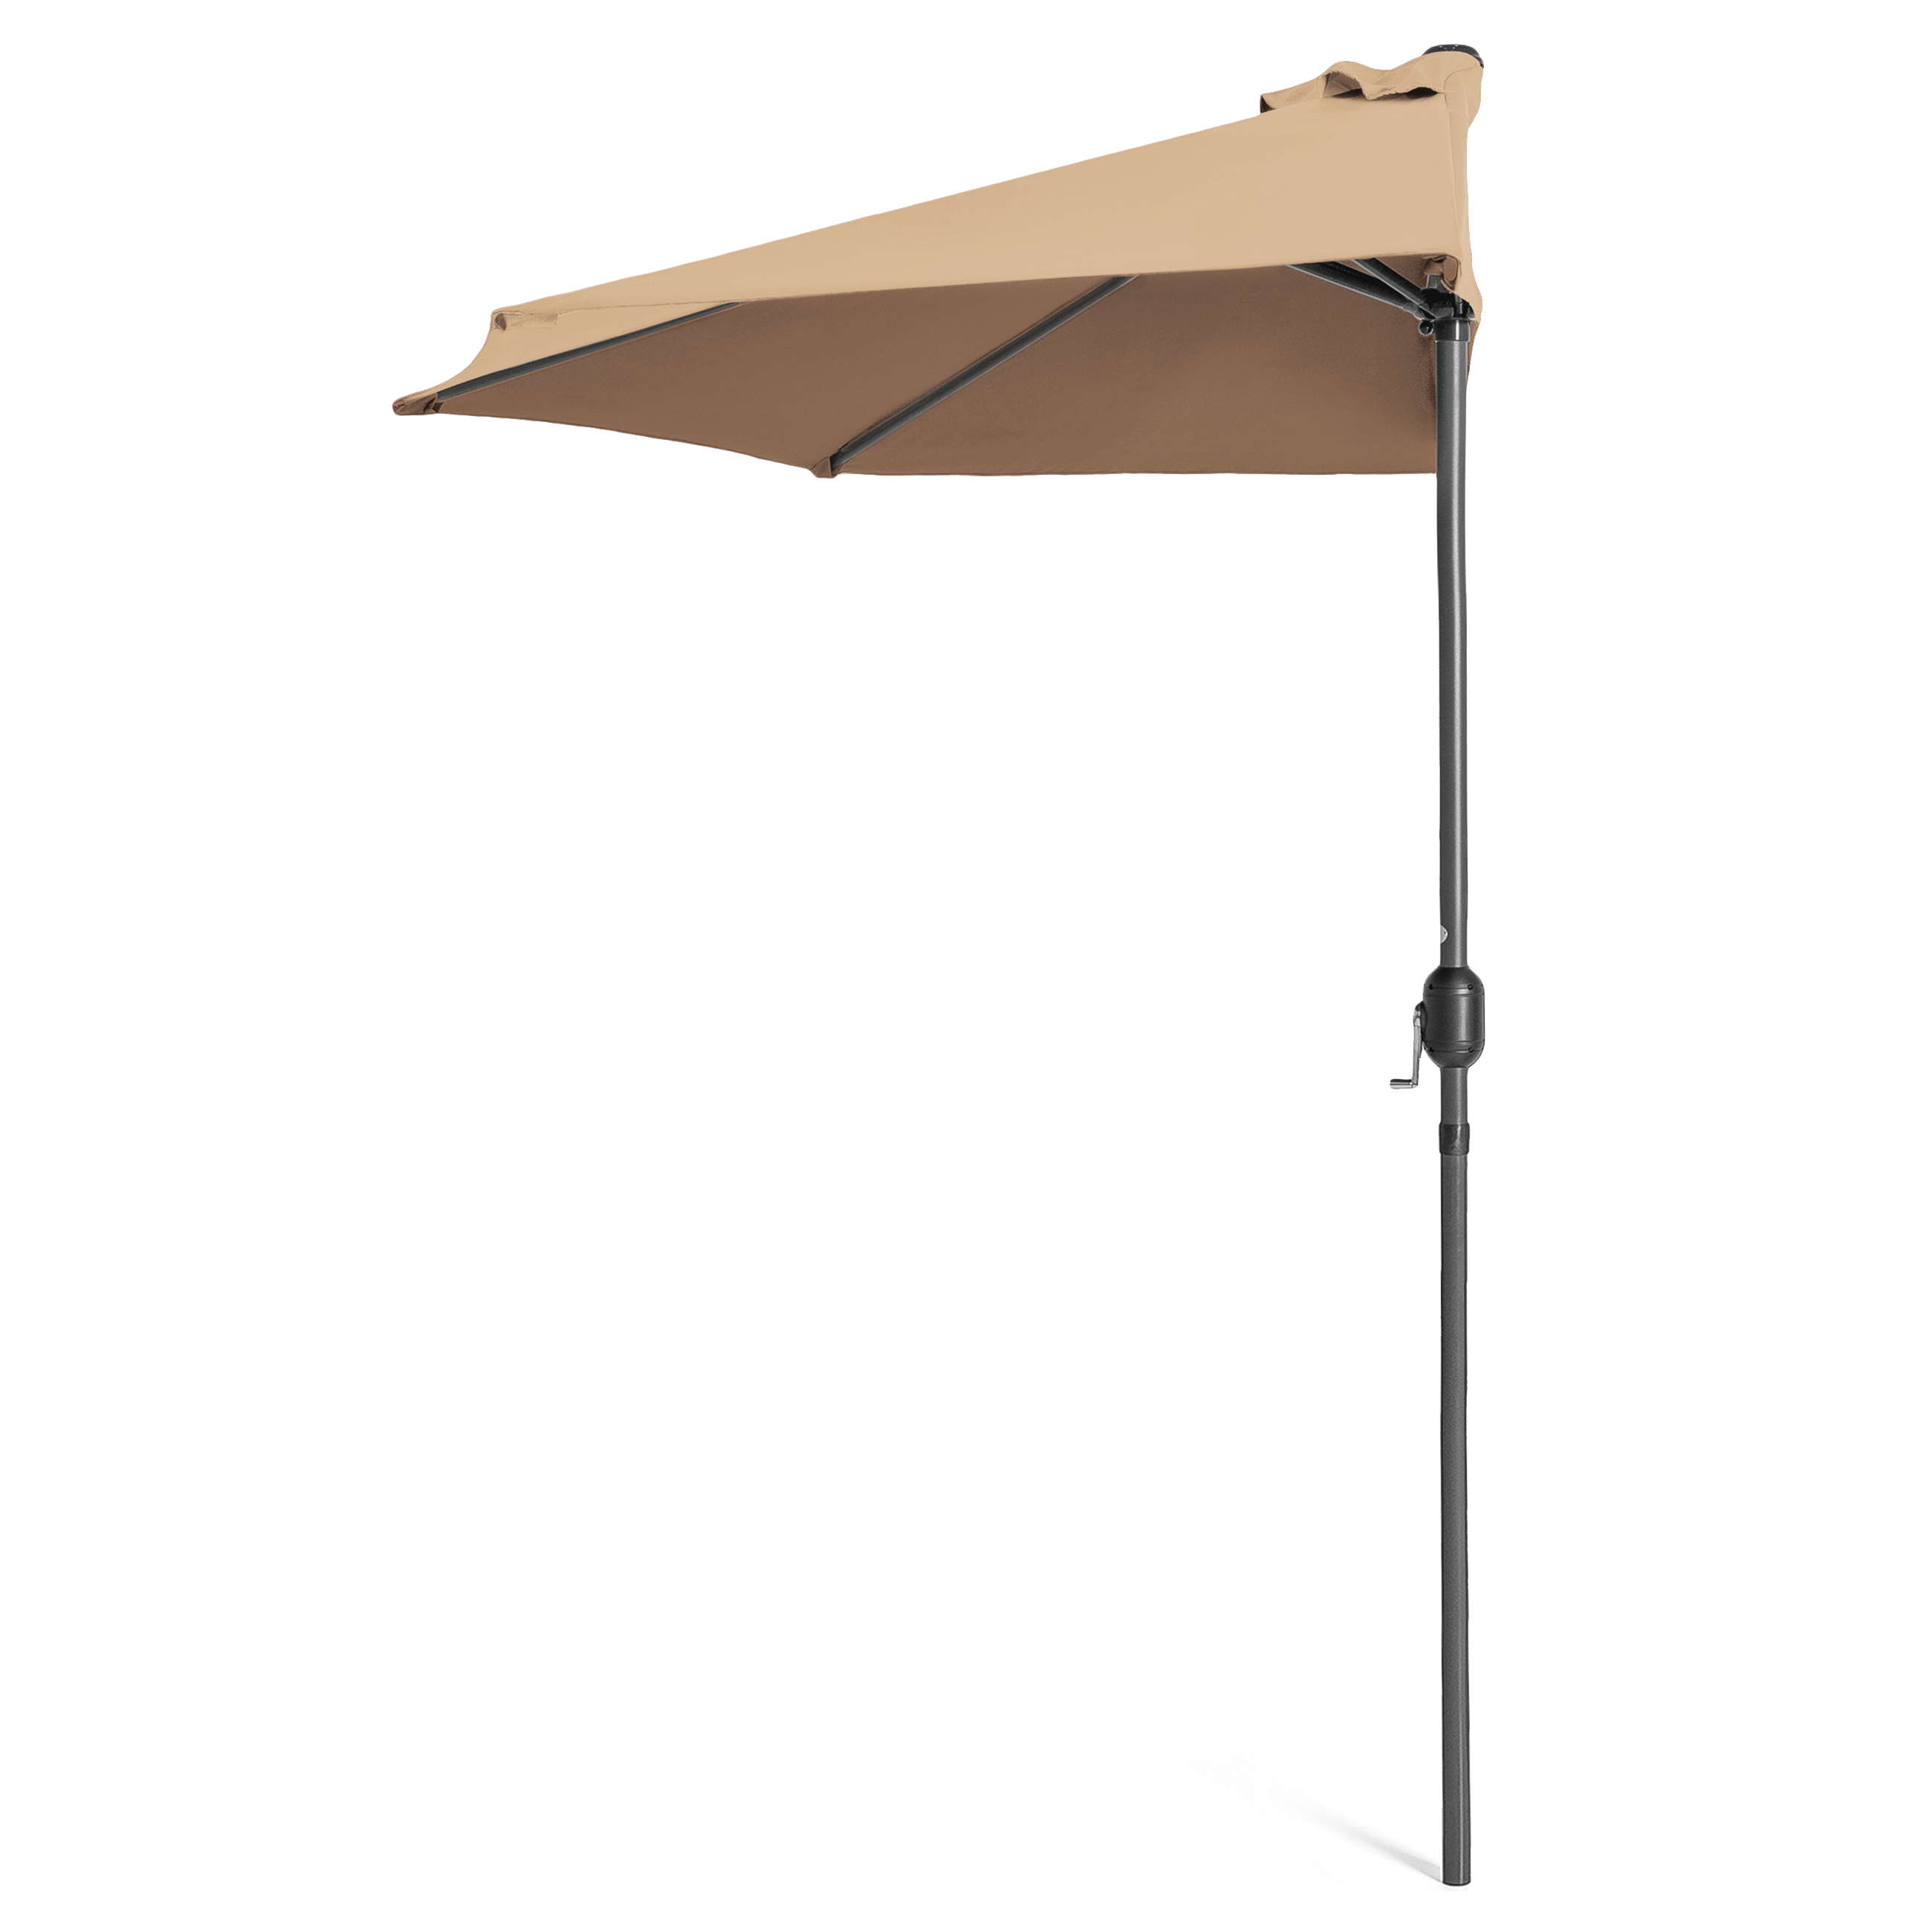 BCP-9ft-Half-Patio-Umbrella-w-Crank-Steel-Frame-UV-amp-Water-Resistant-Fabric thumbnail 32